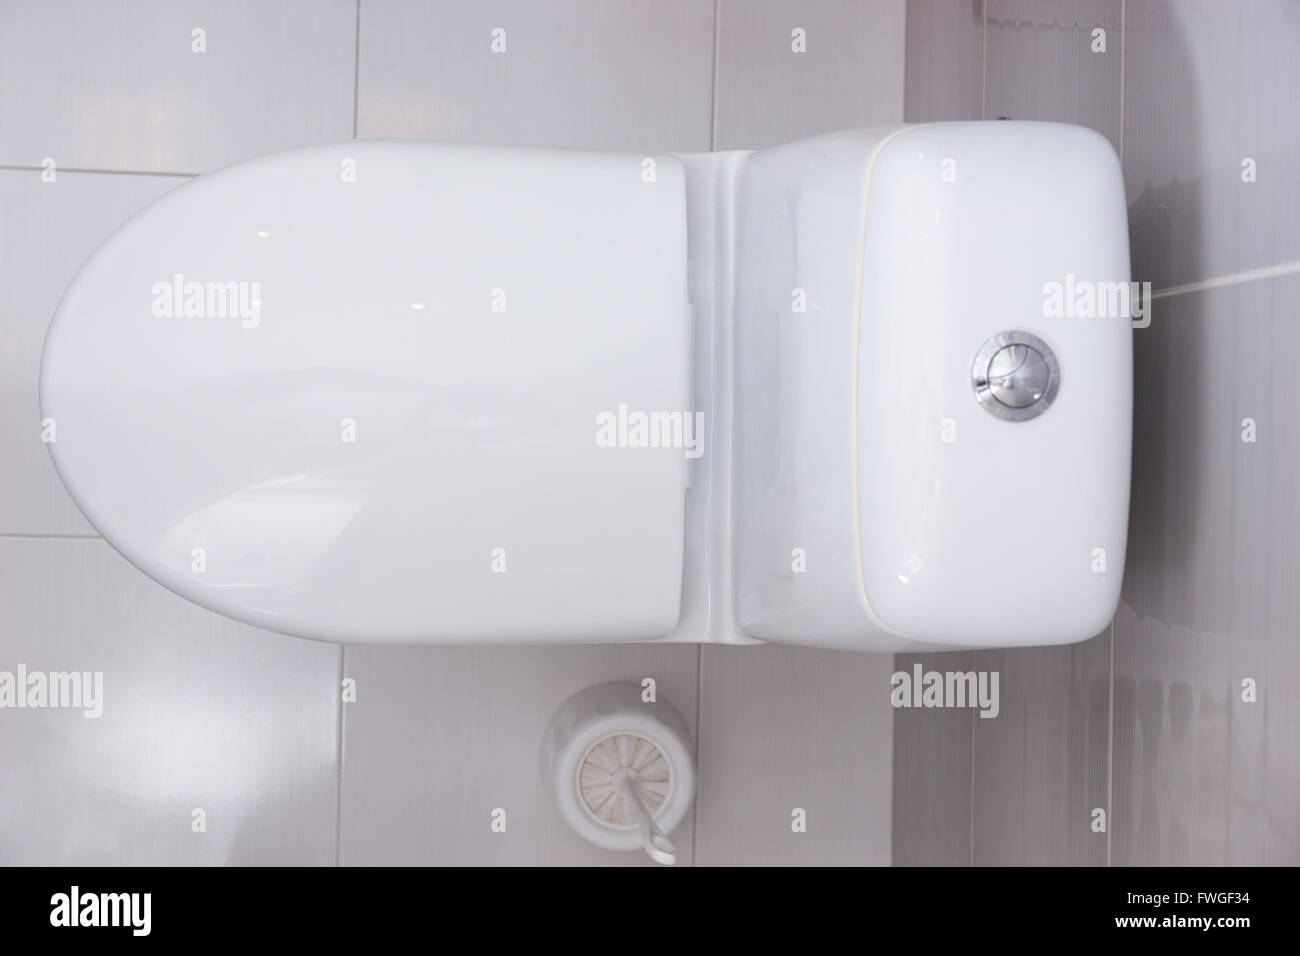 Close up overhead view of a plain white toilet with the seat shut and a  toilet